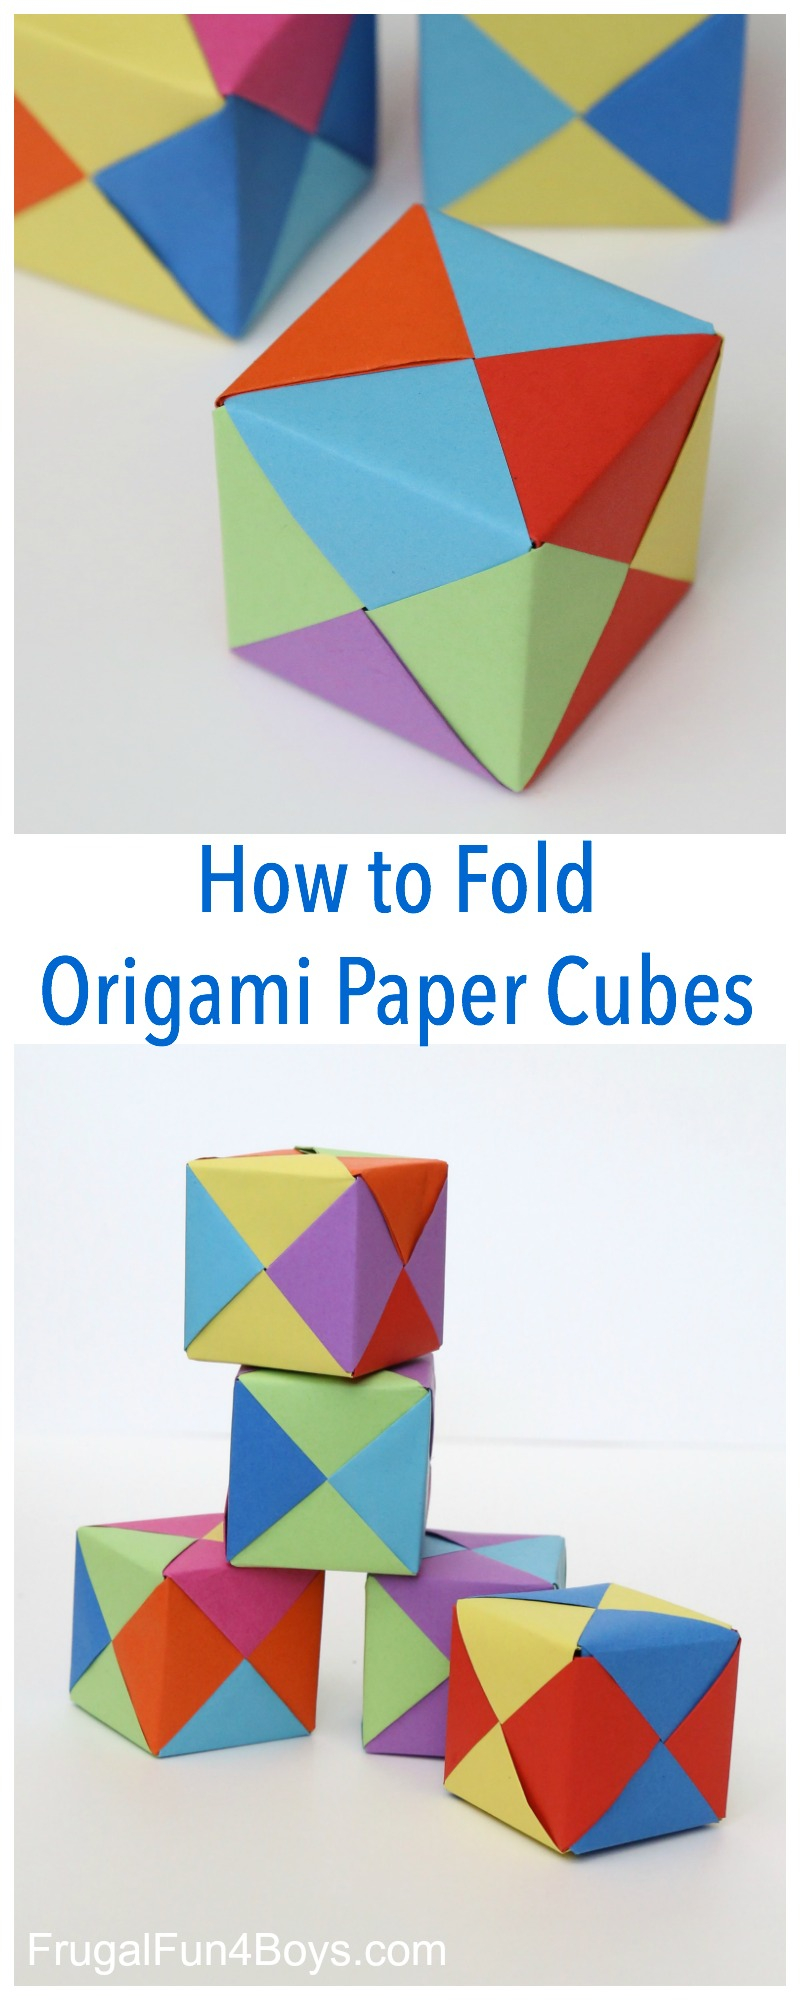 How To Fold Origami Cube How To Fold Origami Paper Cubes Frugal Fun For Boys And Girls